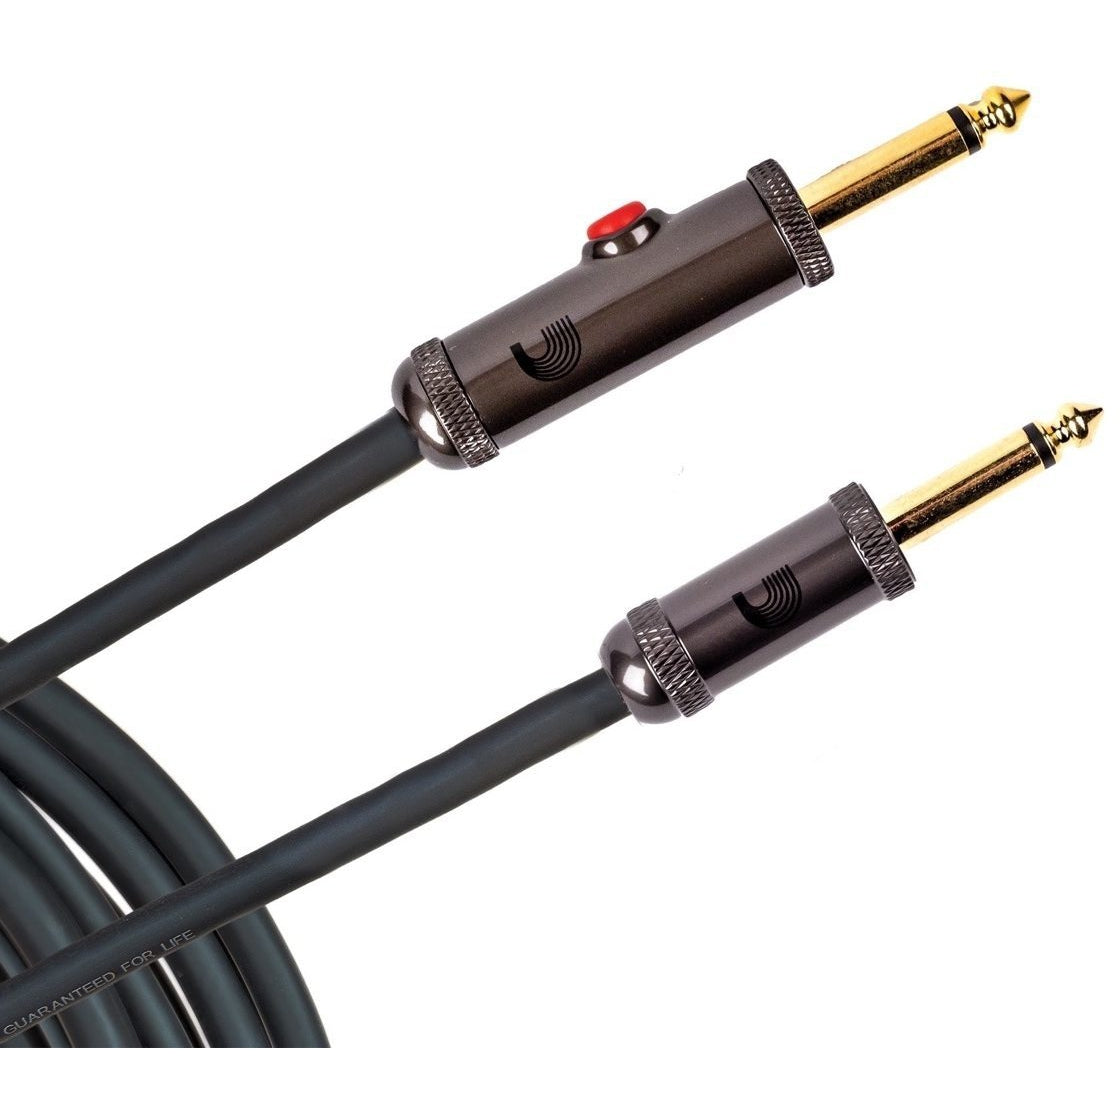 Planet Waves Circuit Breaker Instrument Cable with Latching Cut-Off Switch, 15 Foot